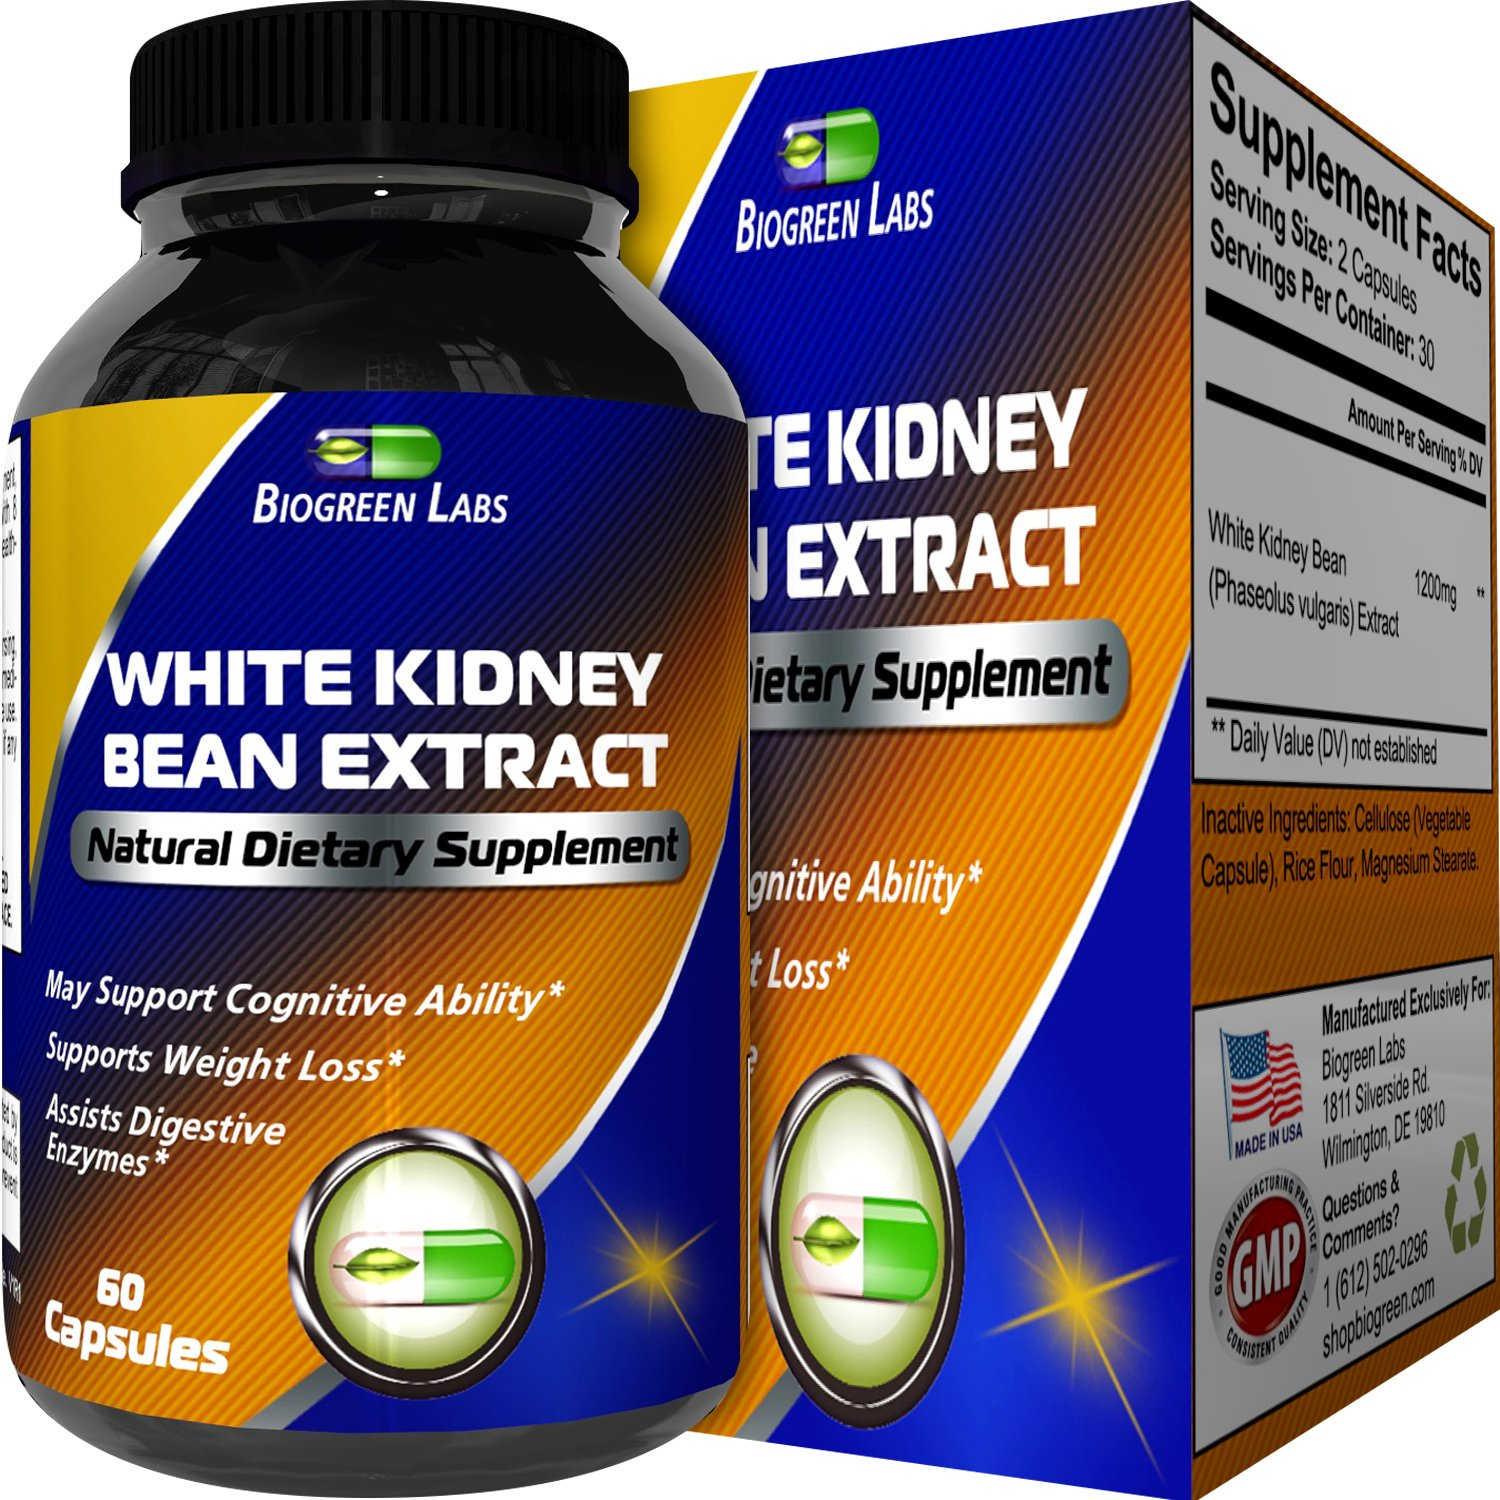 Pure White Kidney Bean Extract Supplement for Weight Loss - Phase 2 Natural Appetite Suppressant + Carbohydrate Blocker Blood Sugar Support - Fat Loss Capsules for Women & Men